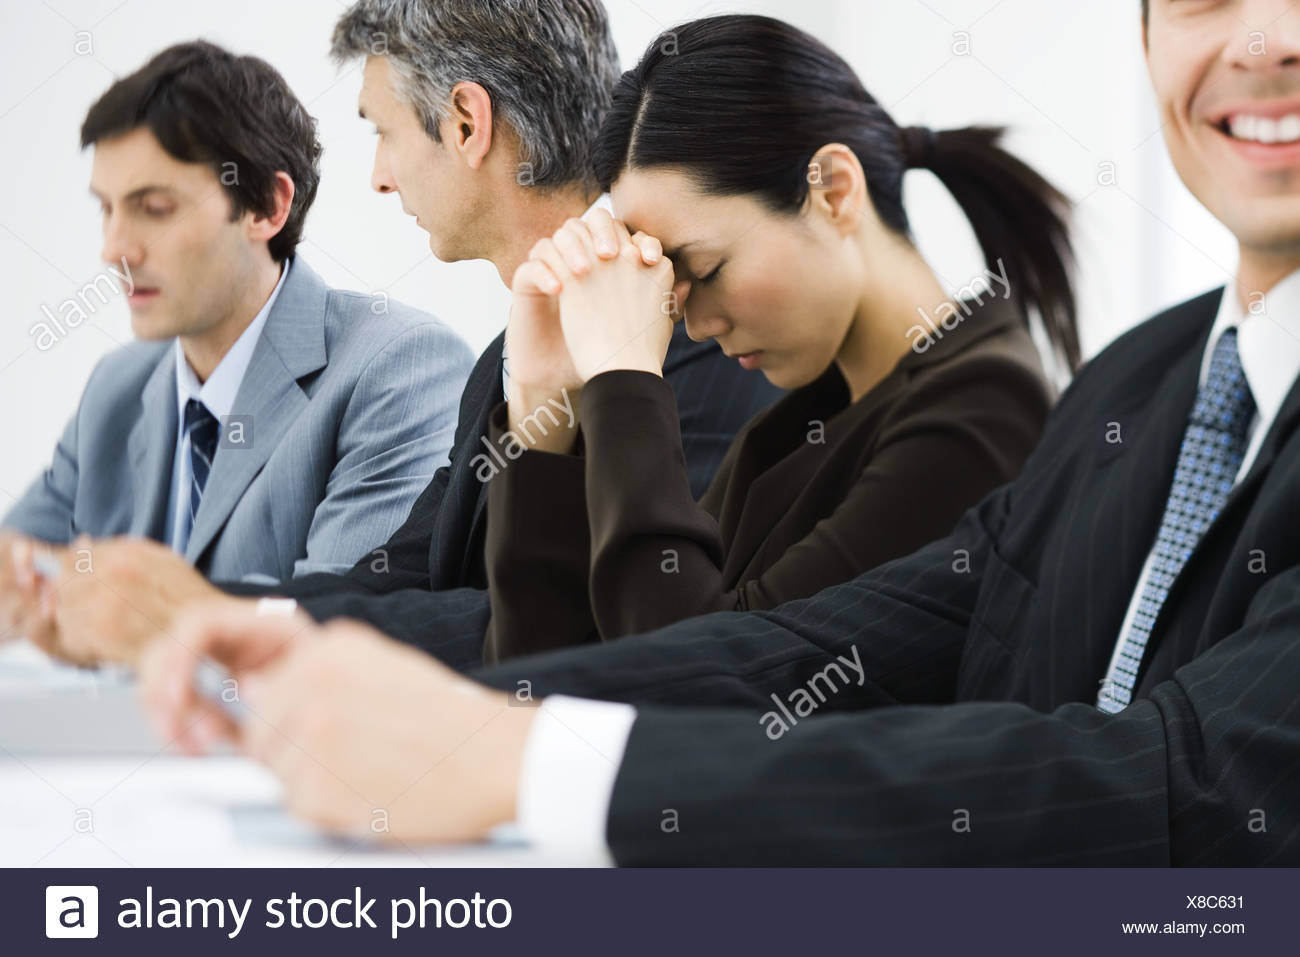 Executives in business meeting, woman closing eyes and leaning head against hands - Stock Image